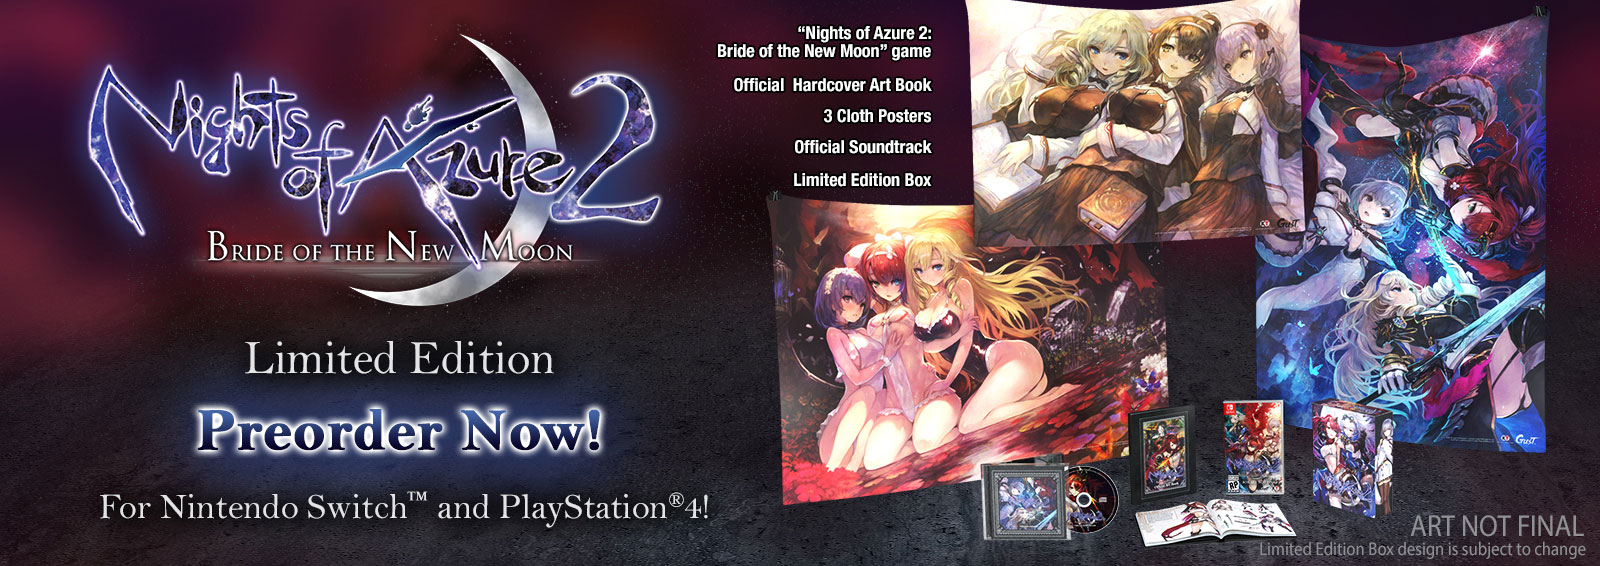 Nights Of Azure 2: Bride Of The New Moon Limited Edition